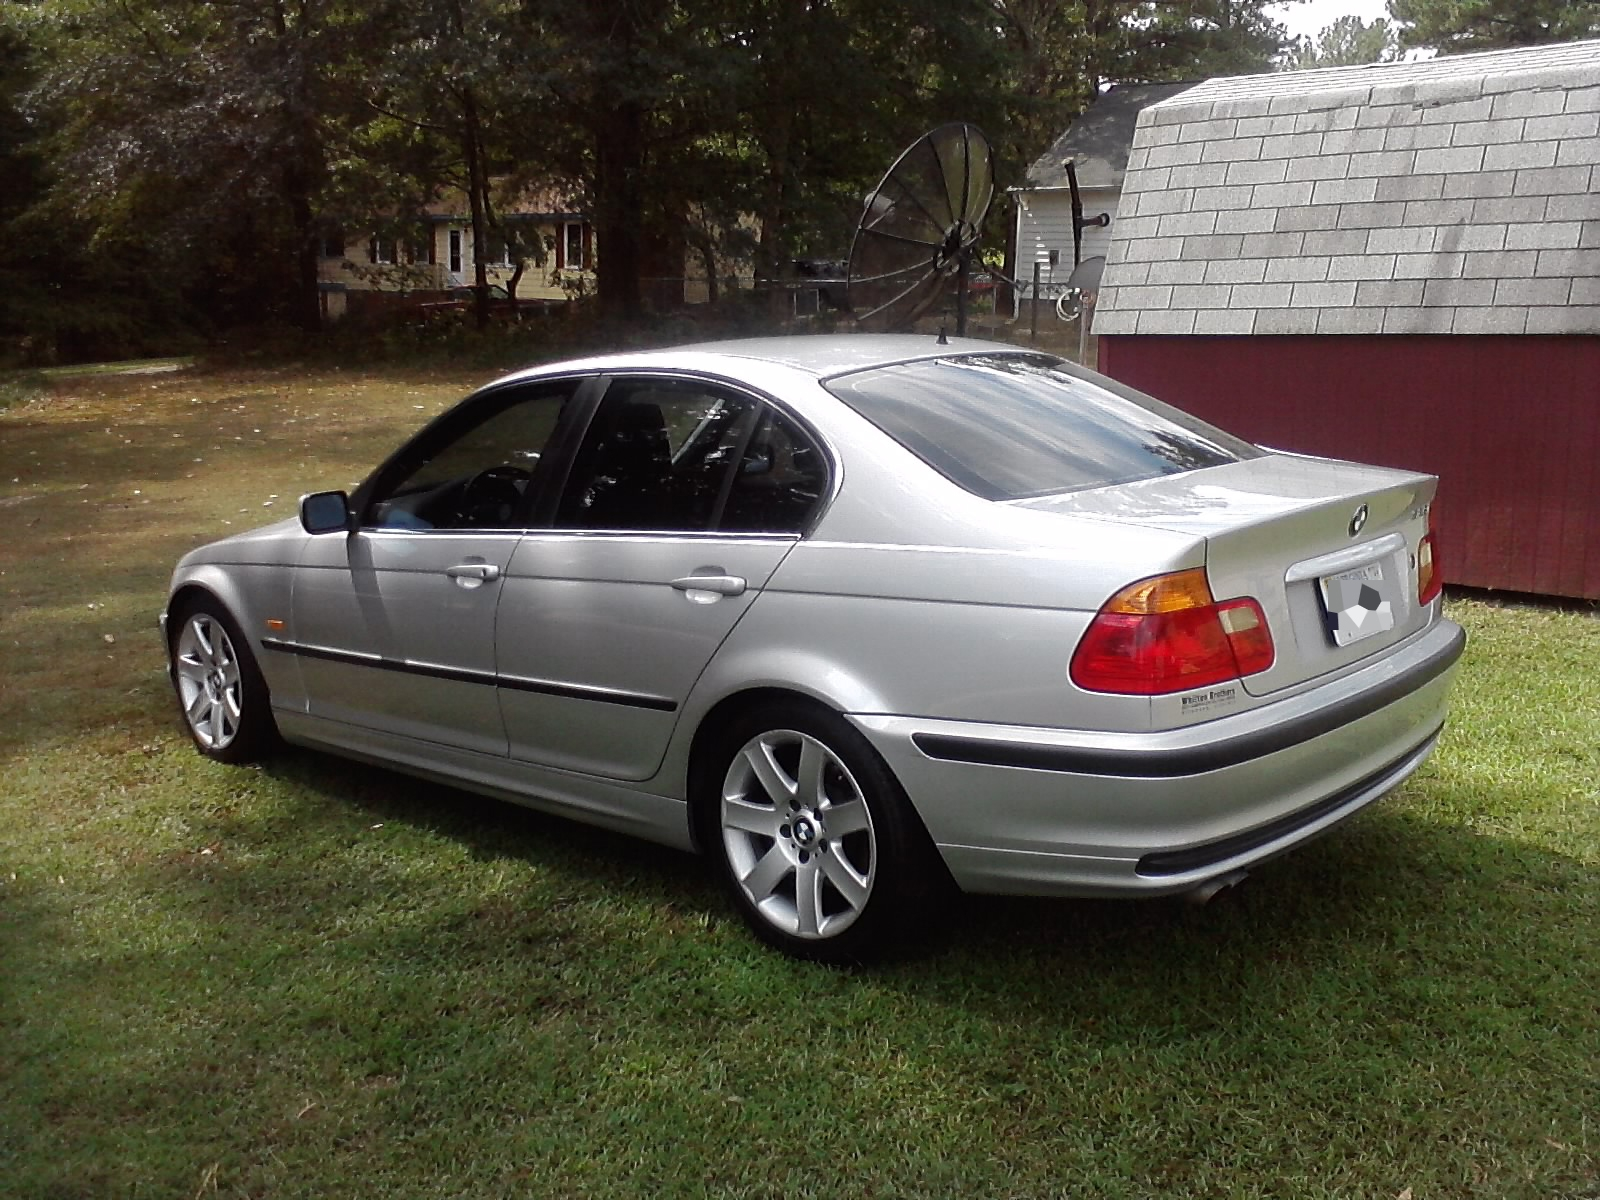 BMW 3 series 318is 2000 photo - 3